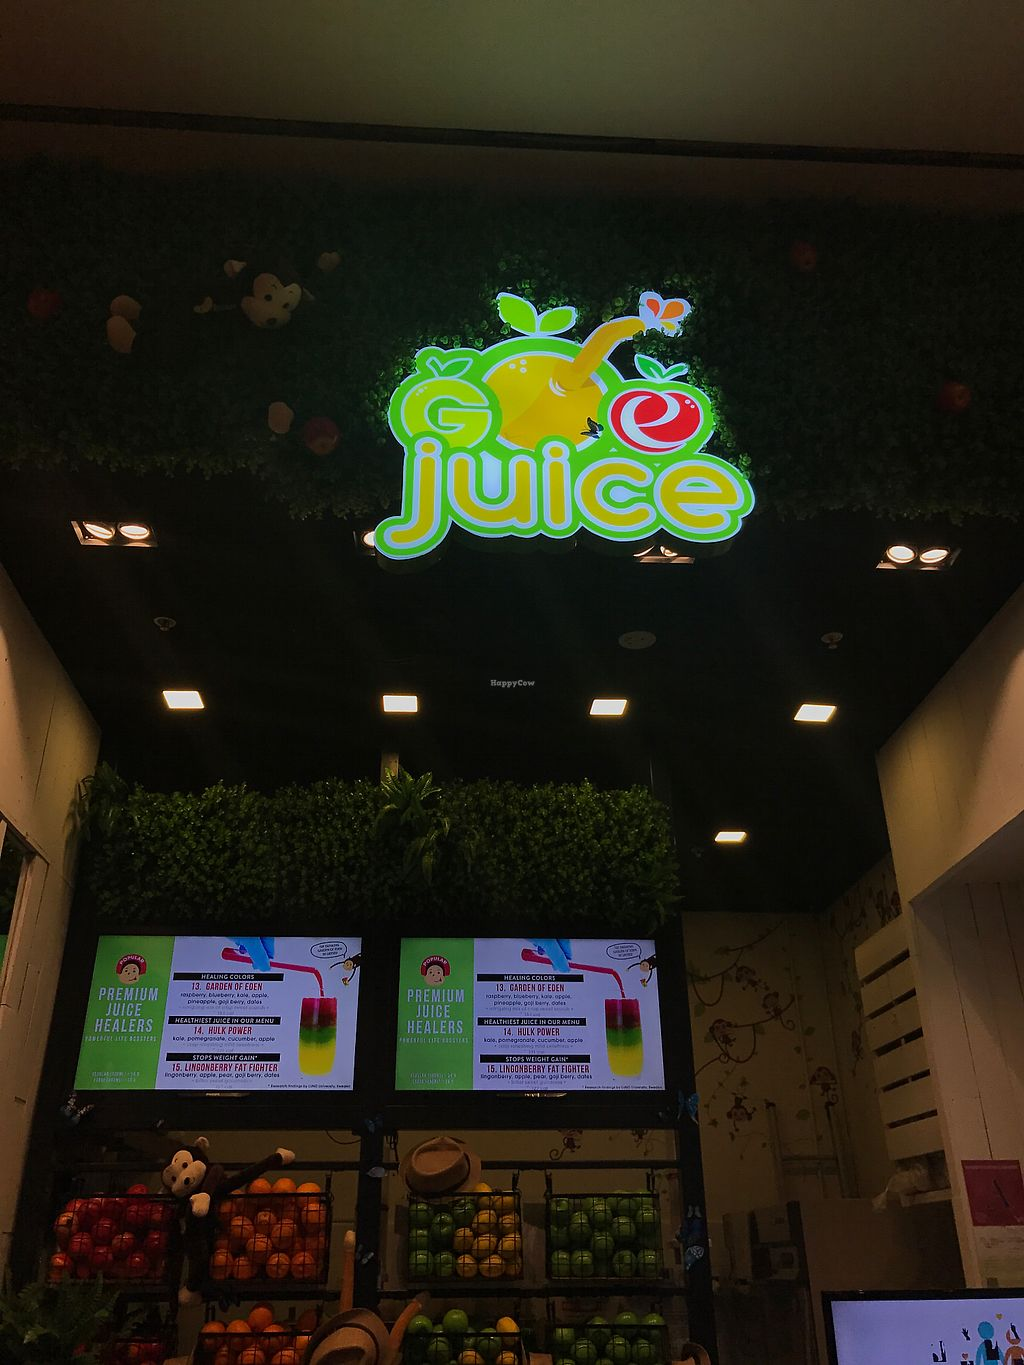 """Photo of Goe Juice  by <a href=""""/members/profile/kkylaye"""">kkylaye</a> <br/>store front <br/> March 23, 2018  - <a href='/contact/abuse/image/115356/374715'>Report</a>"""